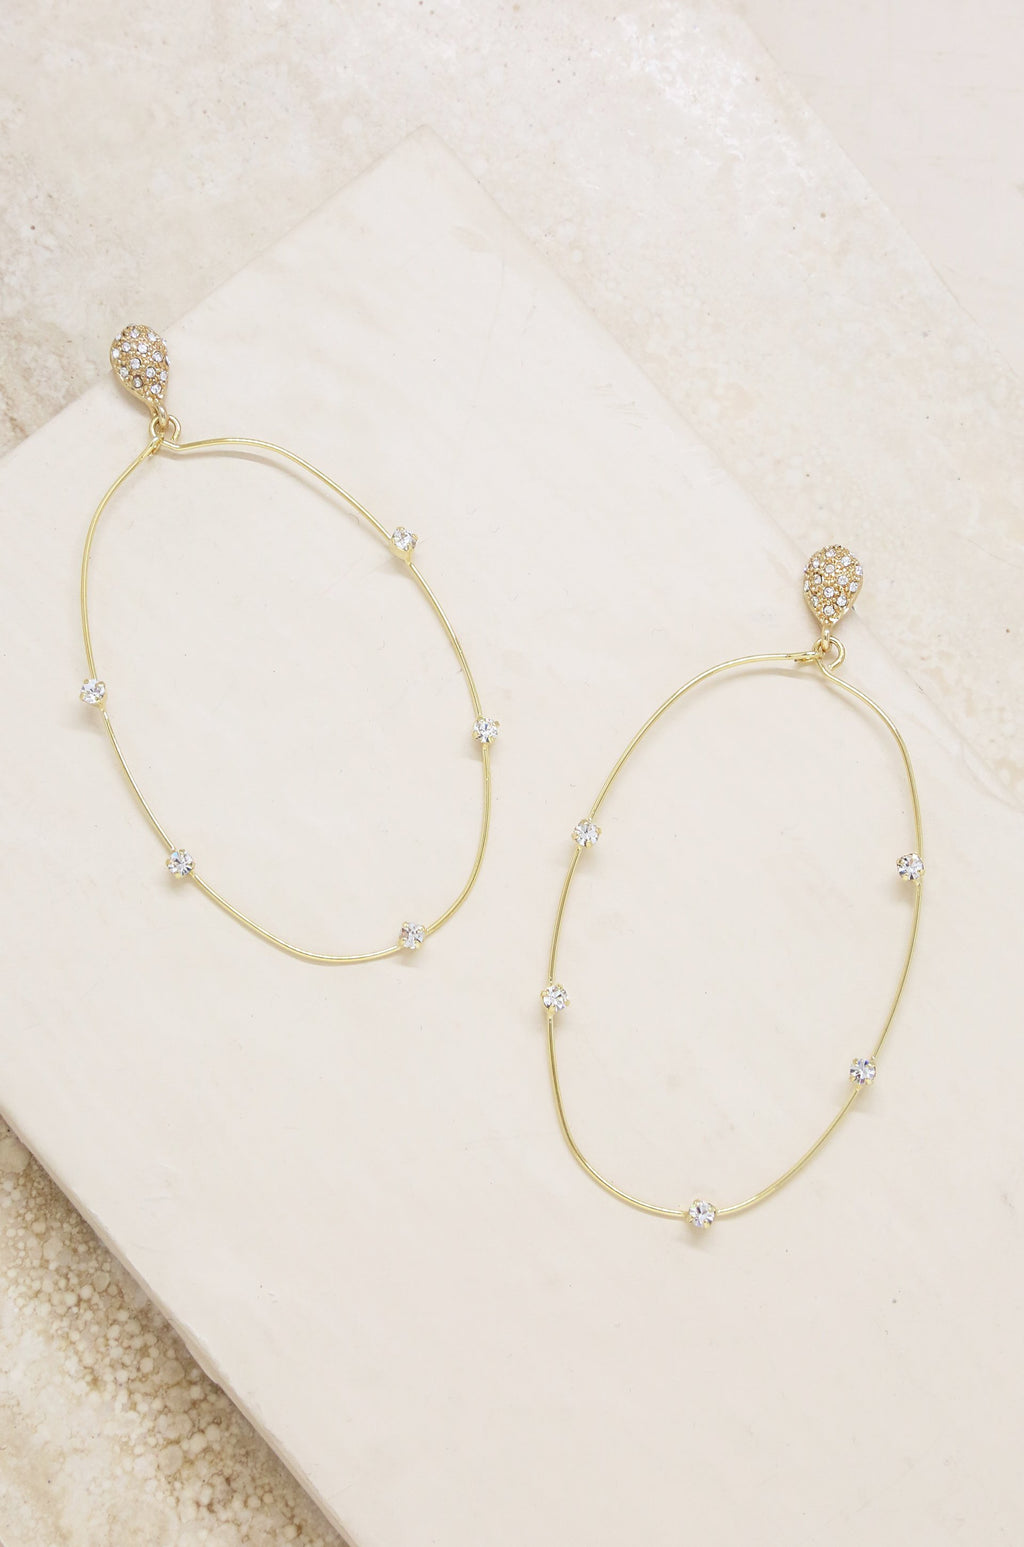 Delicate Gold & Crystal Large Oval Hoop Earrings